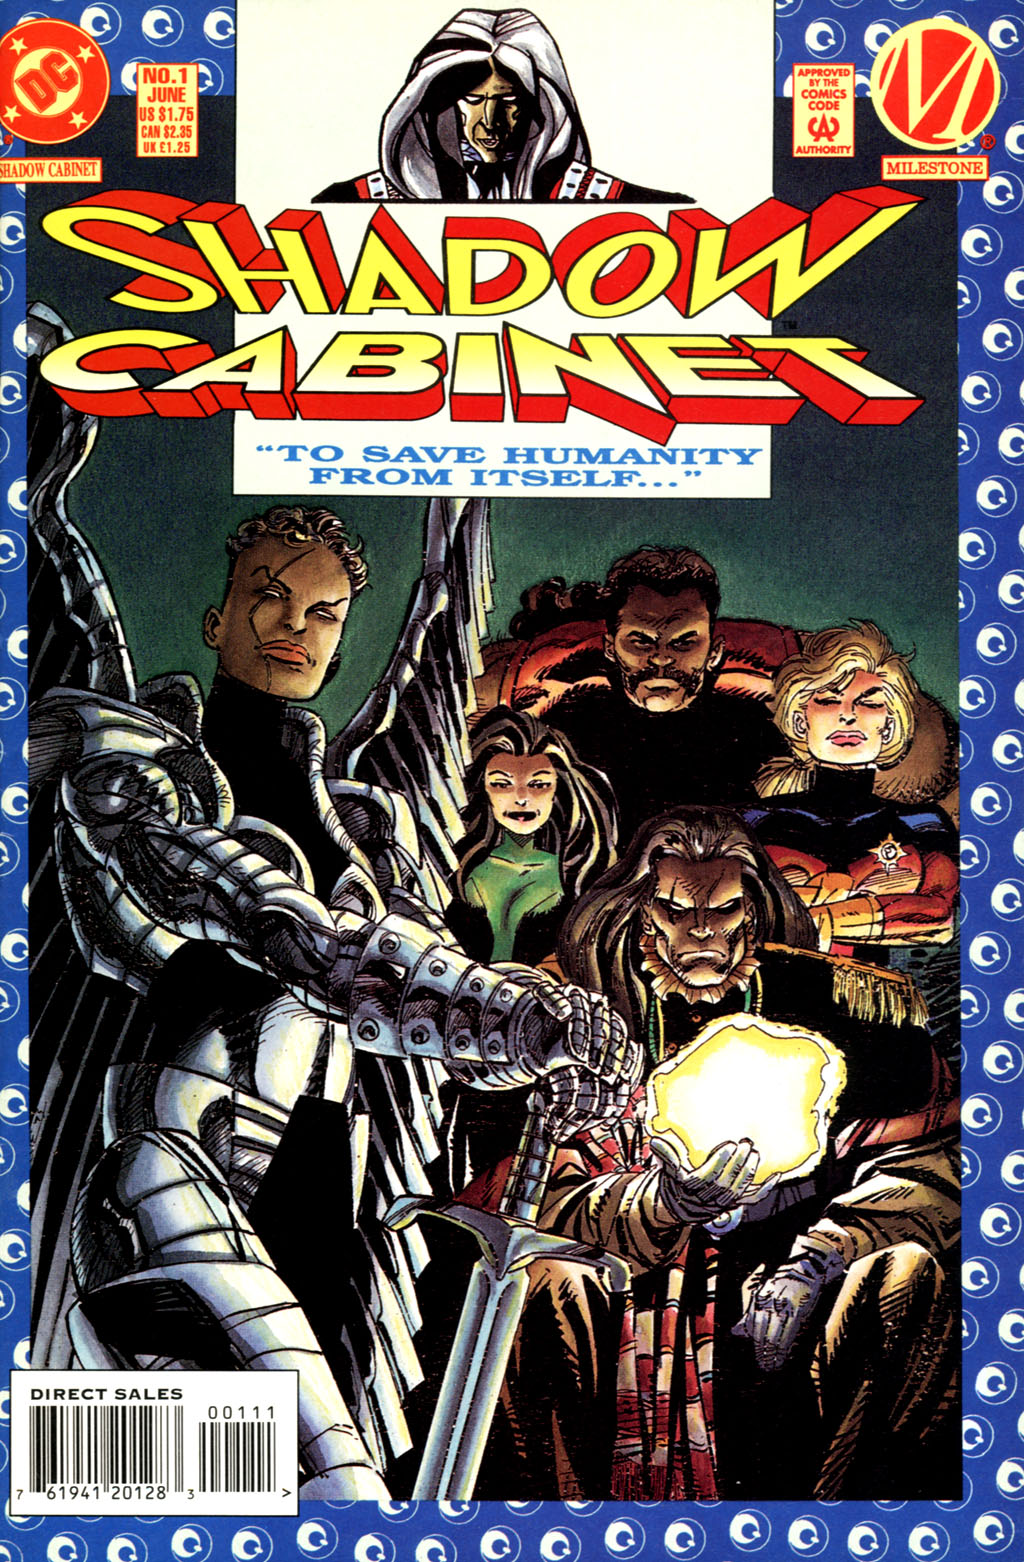 Read online Shadow Cabinet comic -  Issue #1 - 1